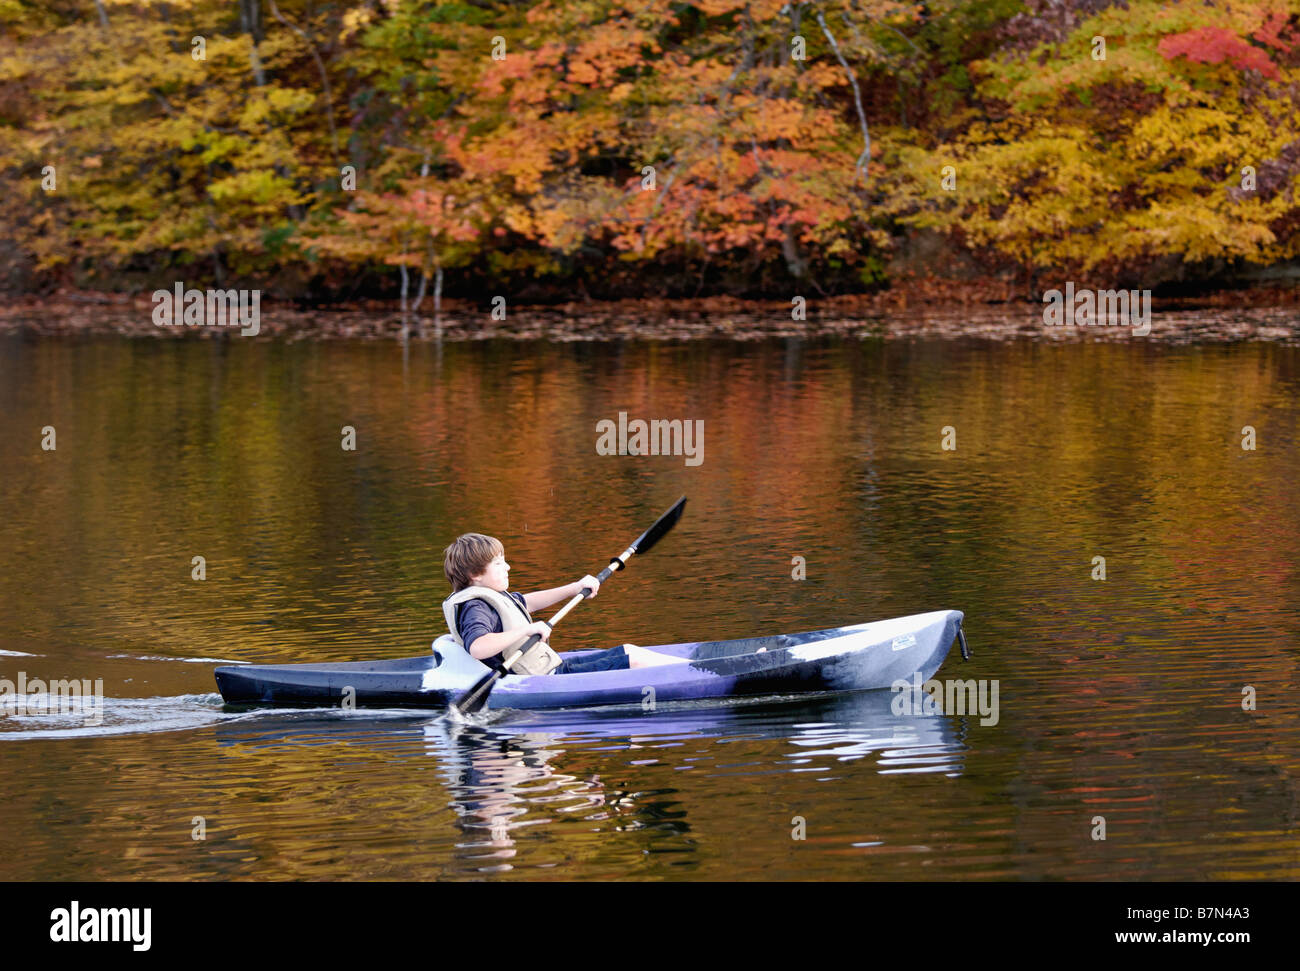 Boy Paddling Kayak on Forested Lake in Autumn at Mount Saint Francis in Floyd County Indiana - Stock Image